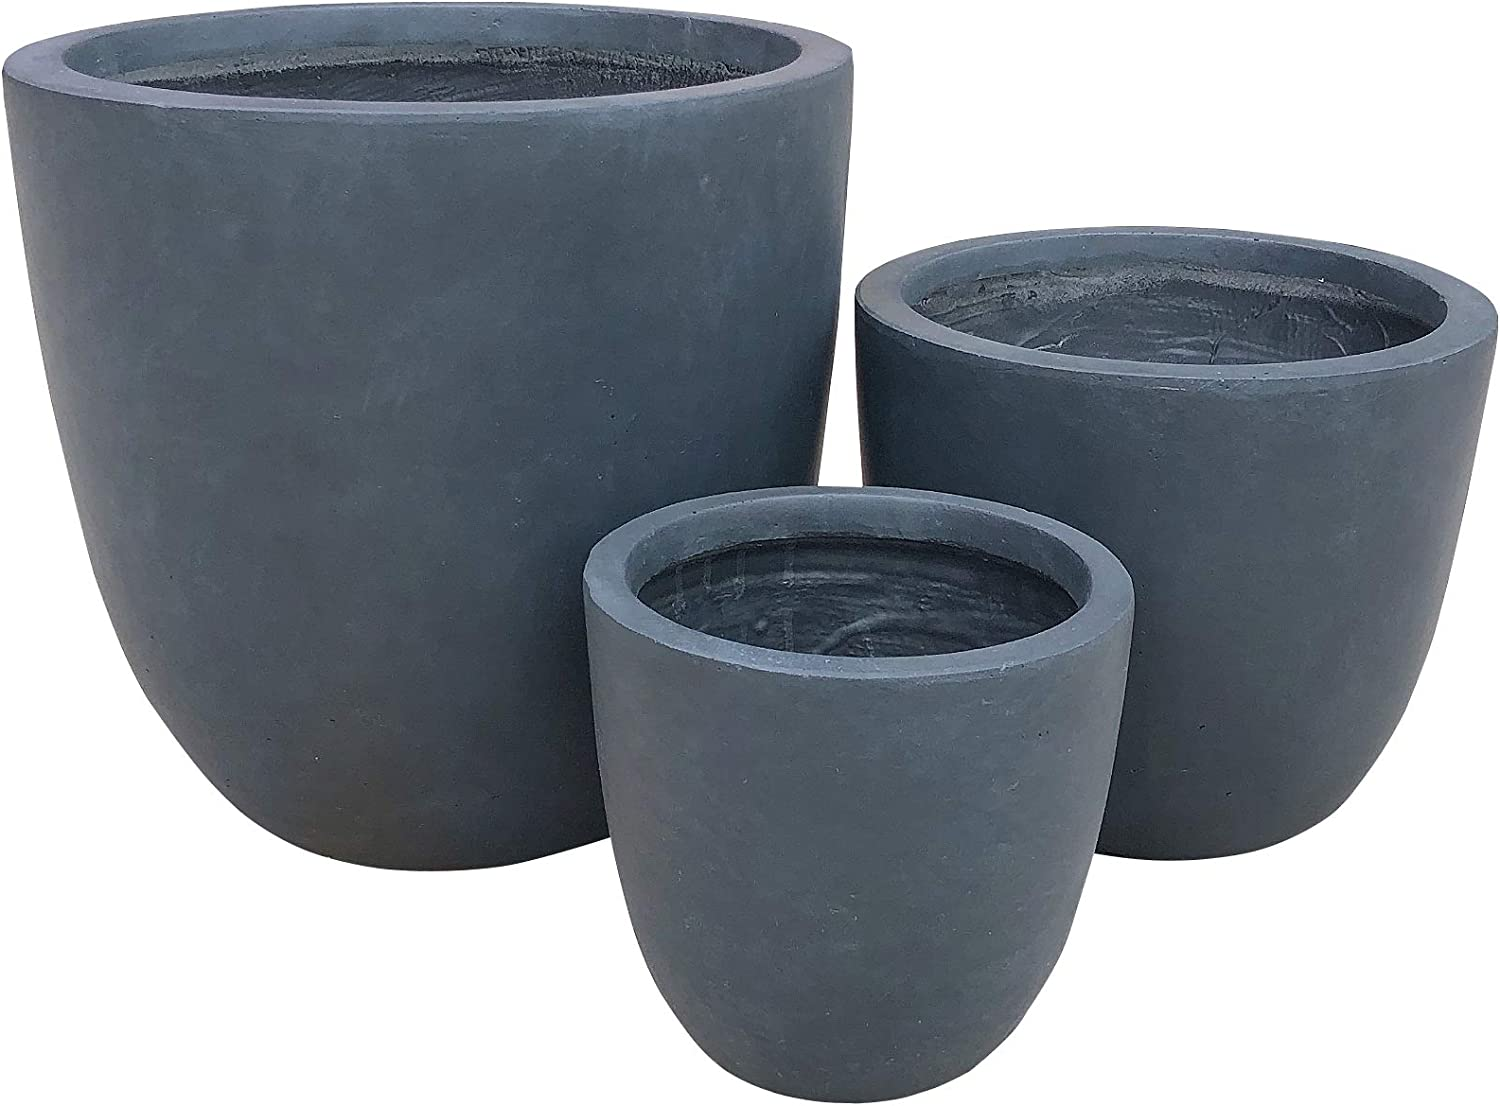 Kante AC0050ABC-60121 Large Concrete Round 3 Out Sizes Long Beach Mall of Max 48% OFF Set